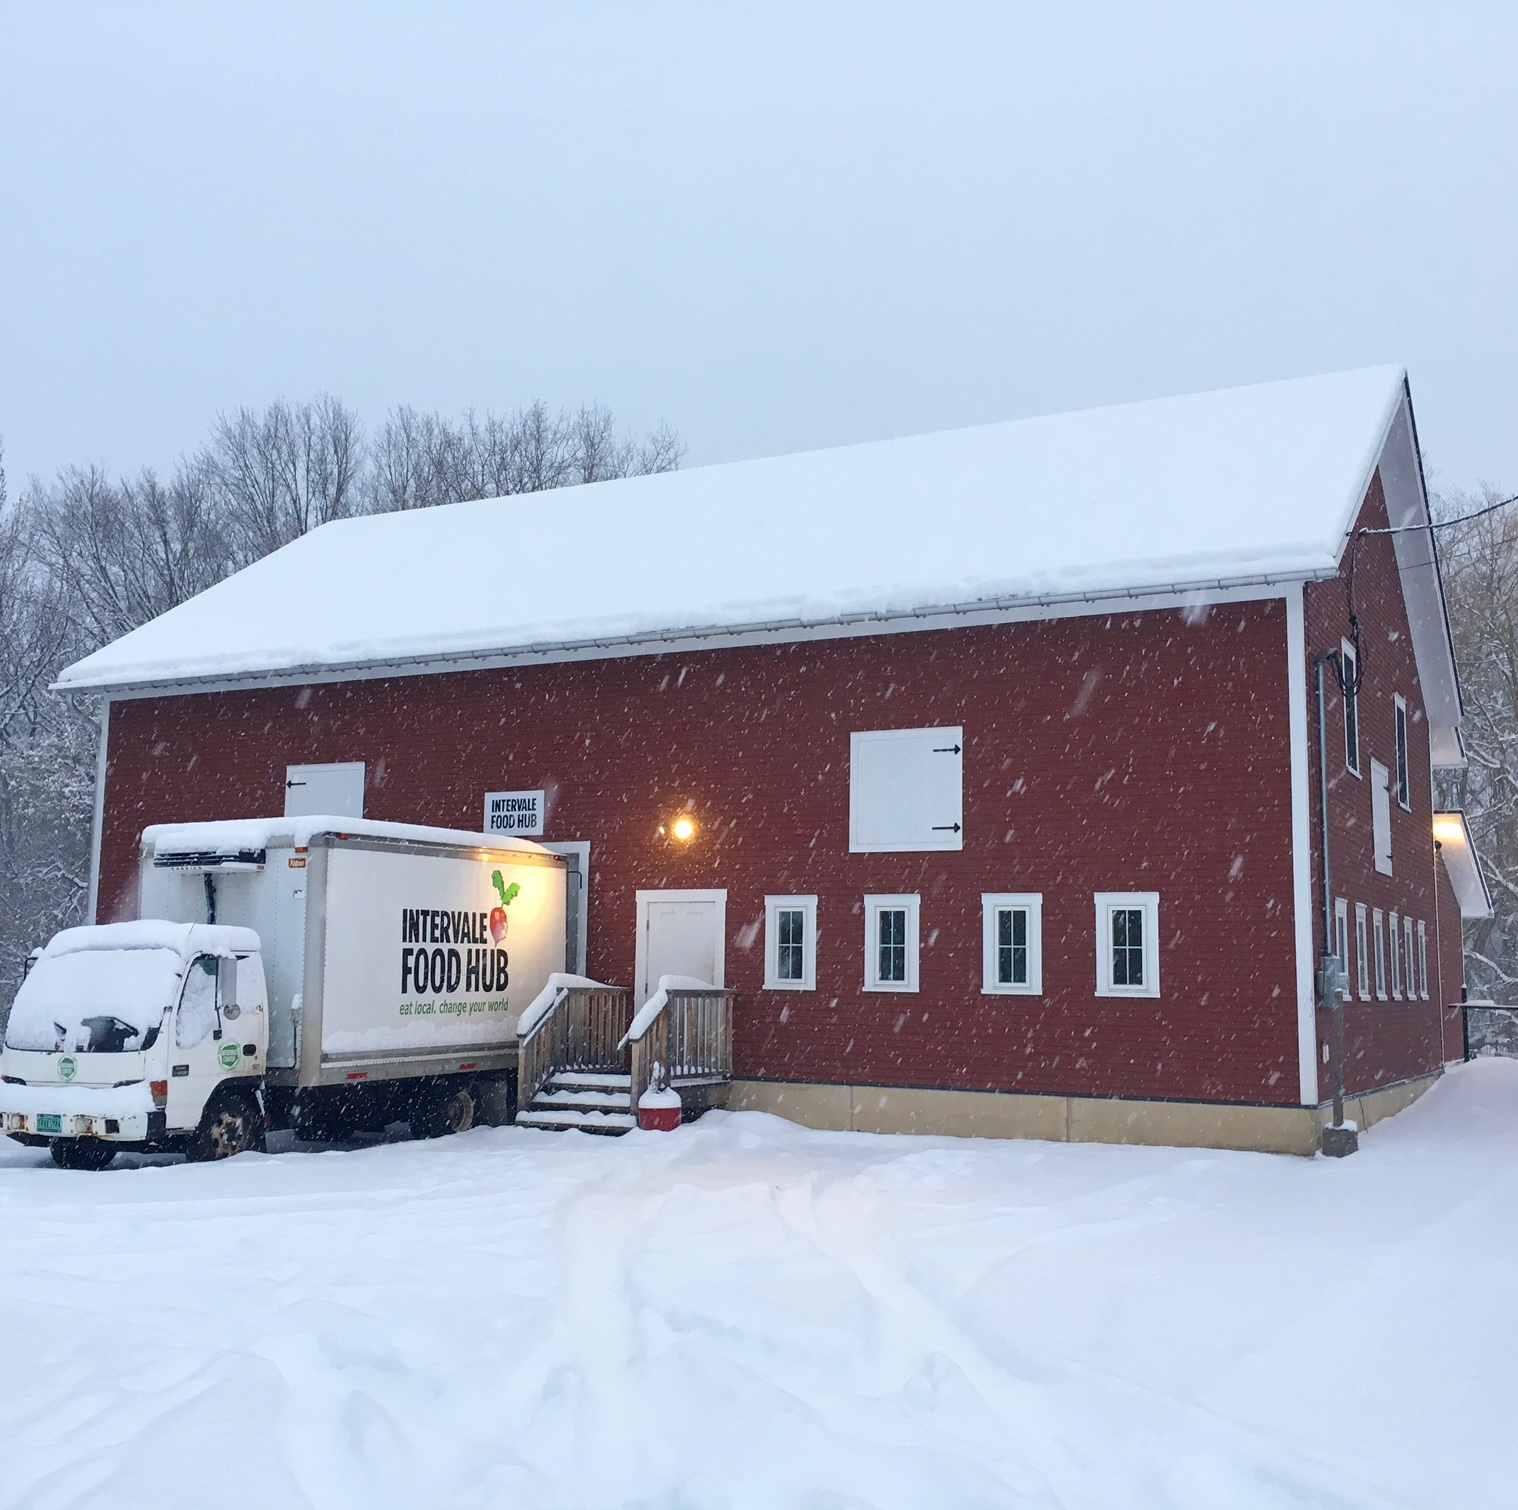 Intervale Food Hub in Snow